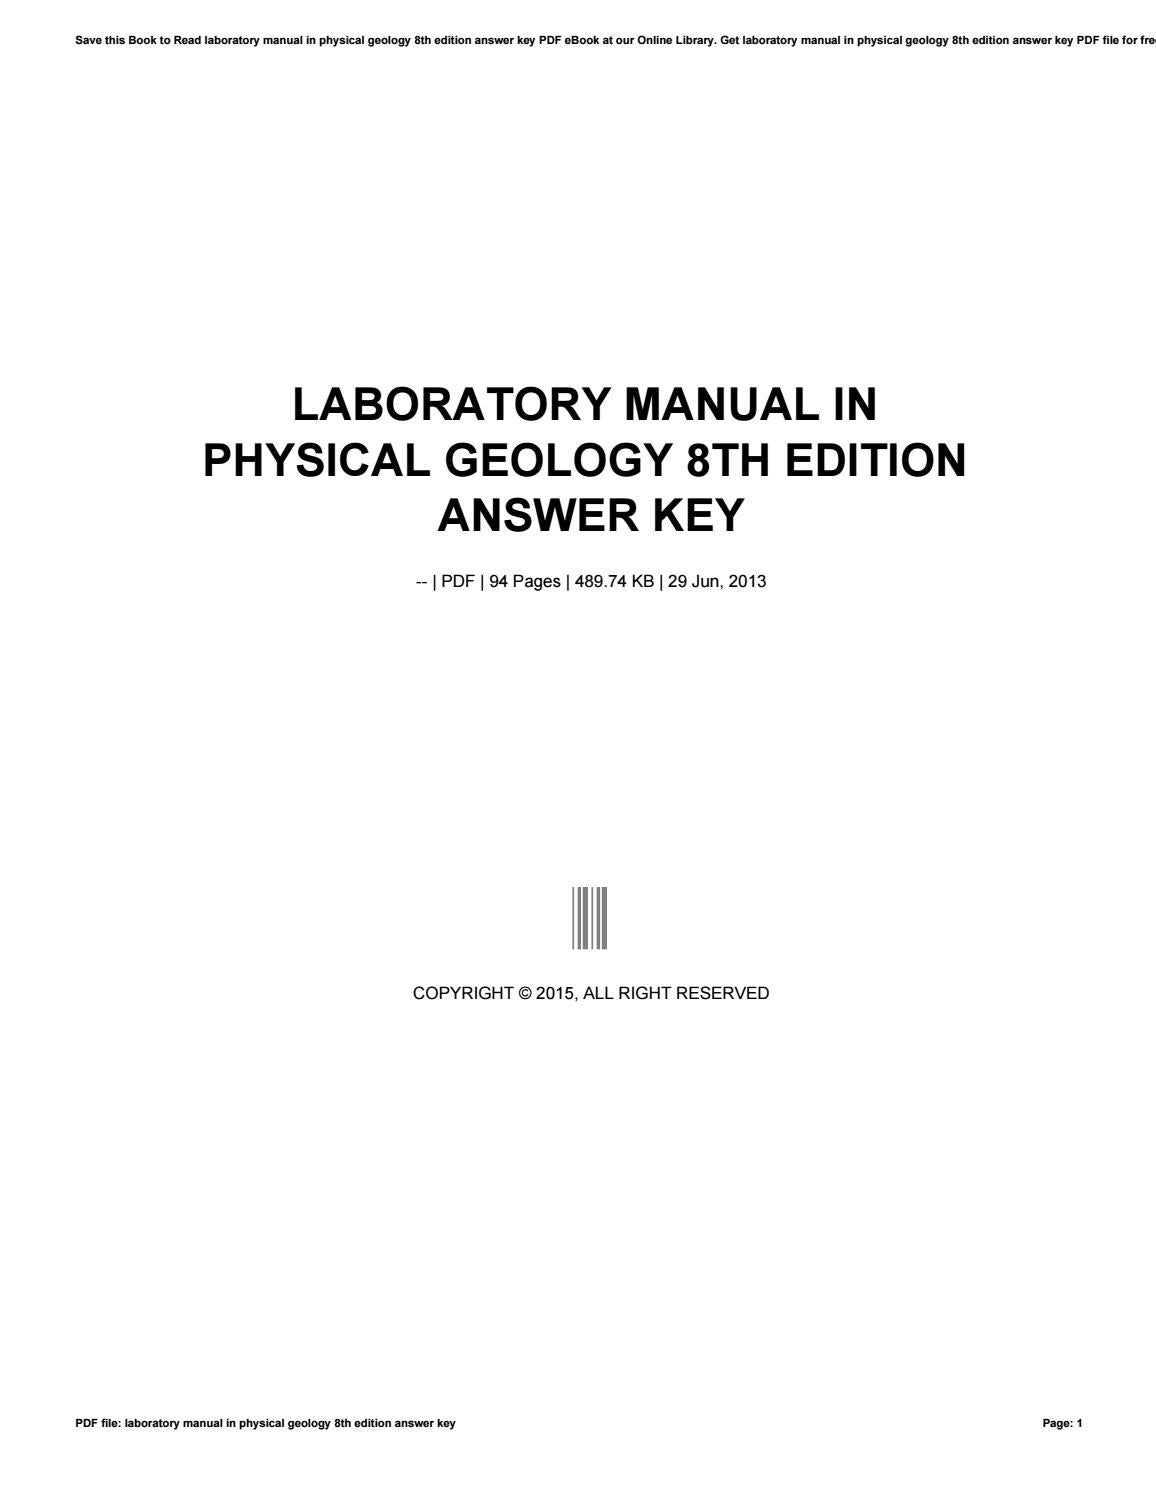 Laboratory manual in physical geology 8th edition answer ...